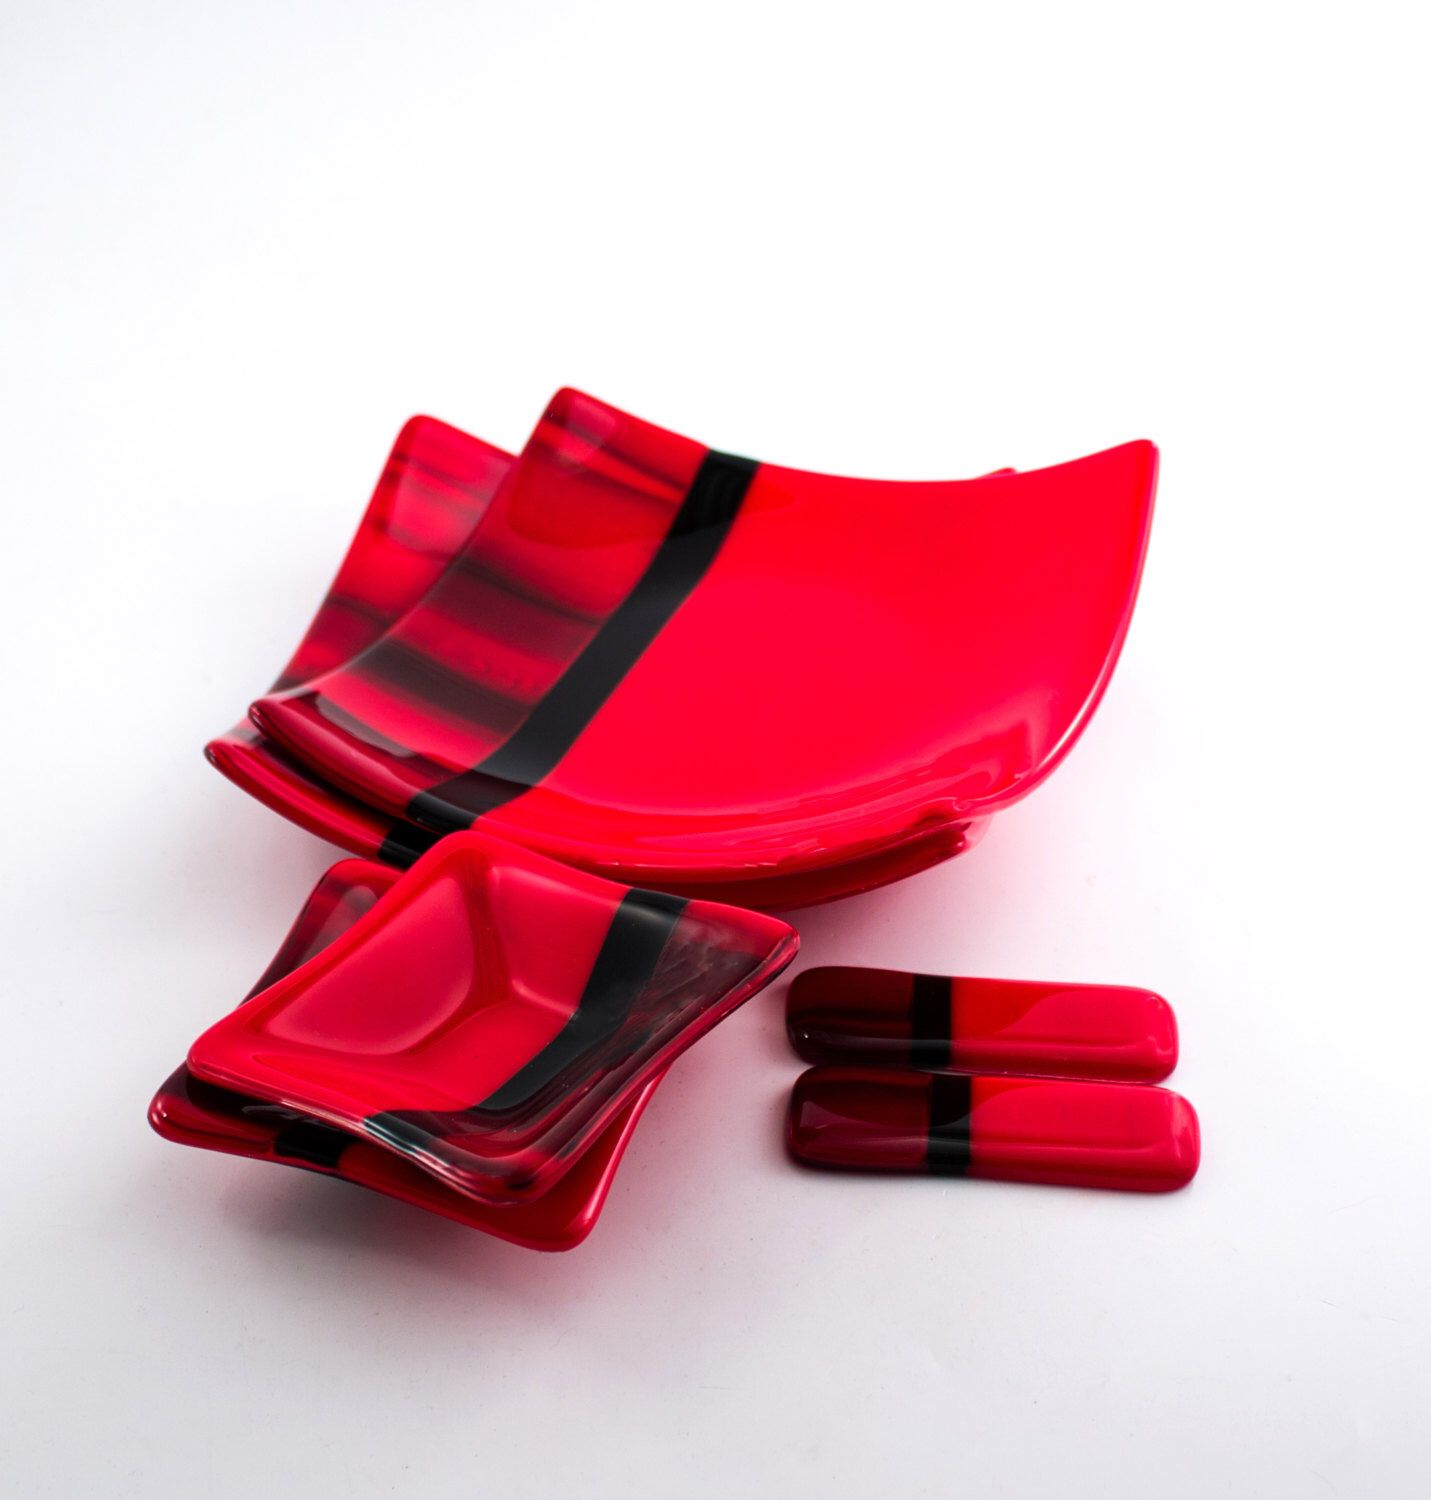 Red and Black Sushi Set Asian Dinnerware Fused Glass Square